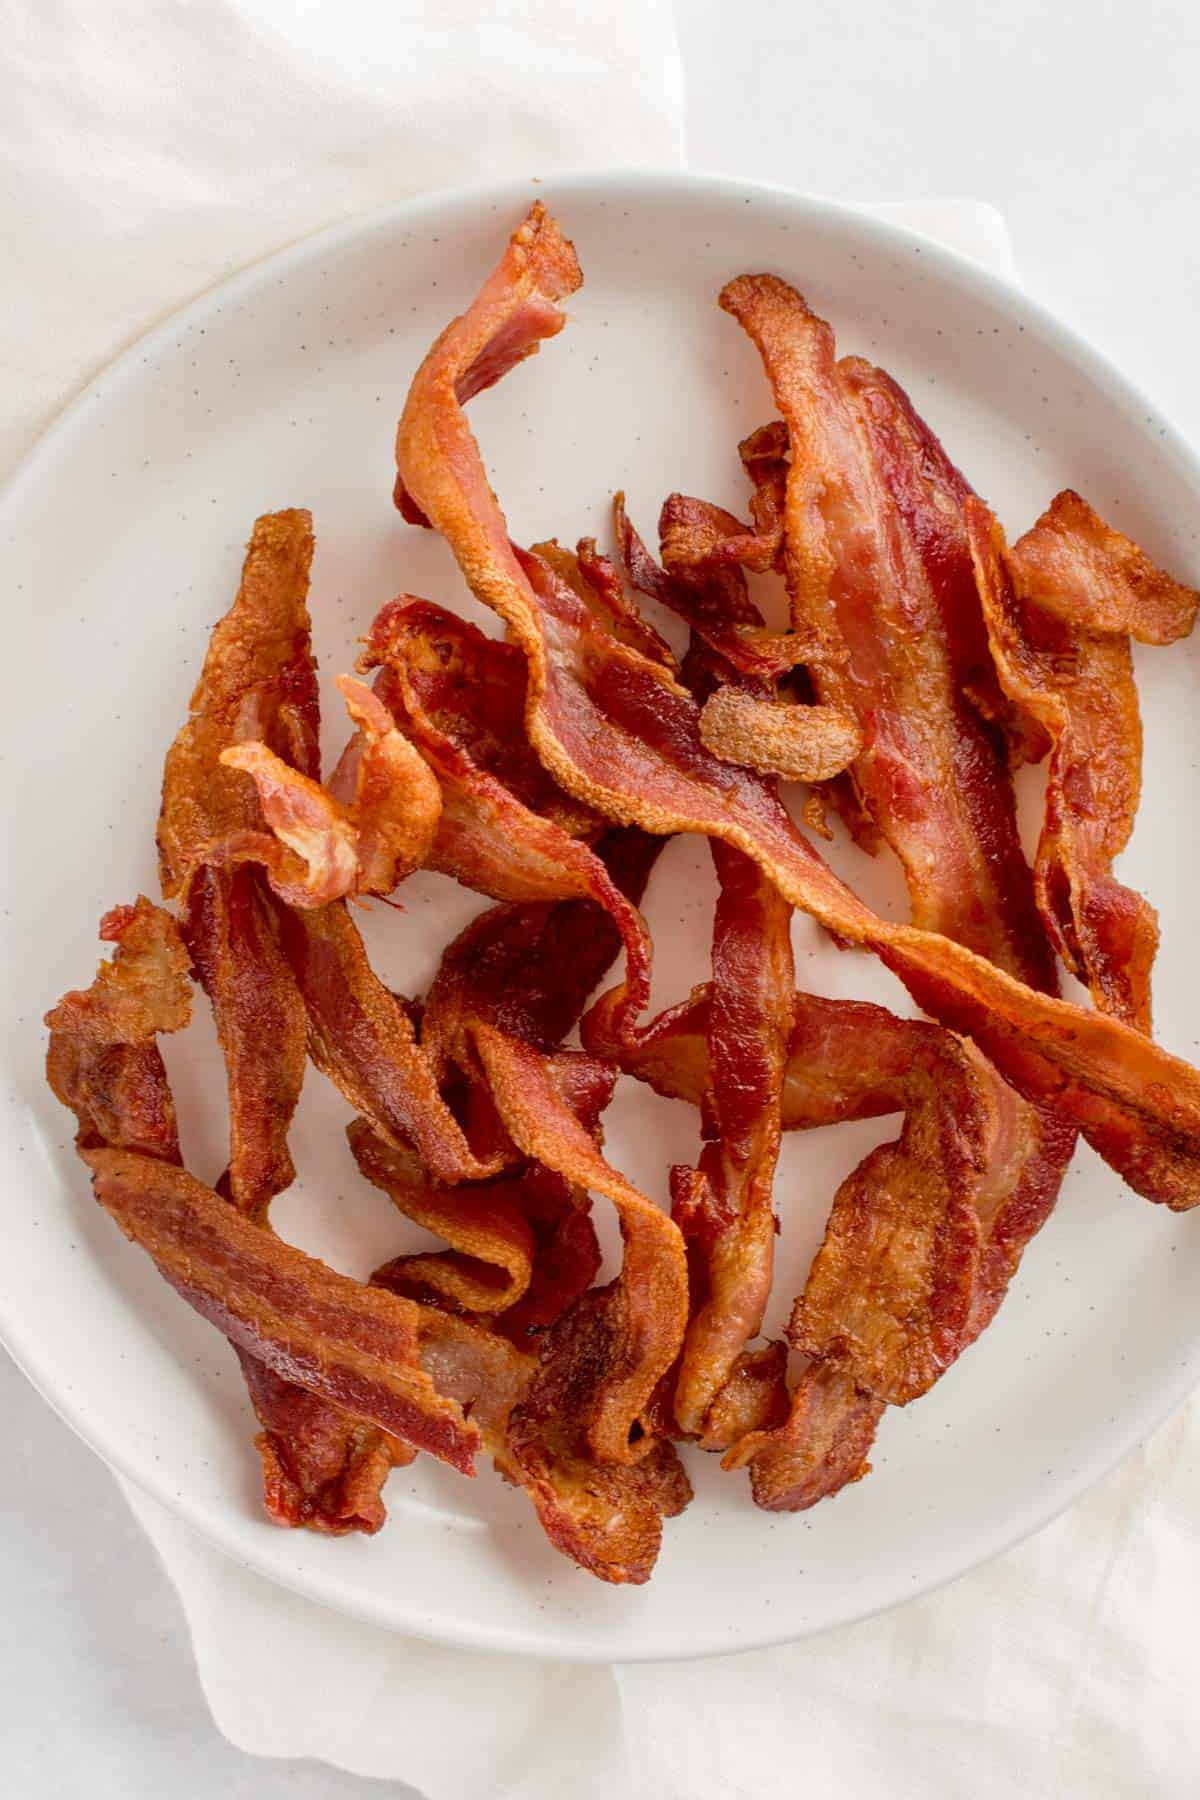 Close up of a plate of bacon made with an air fryer.